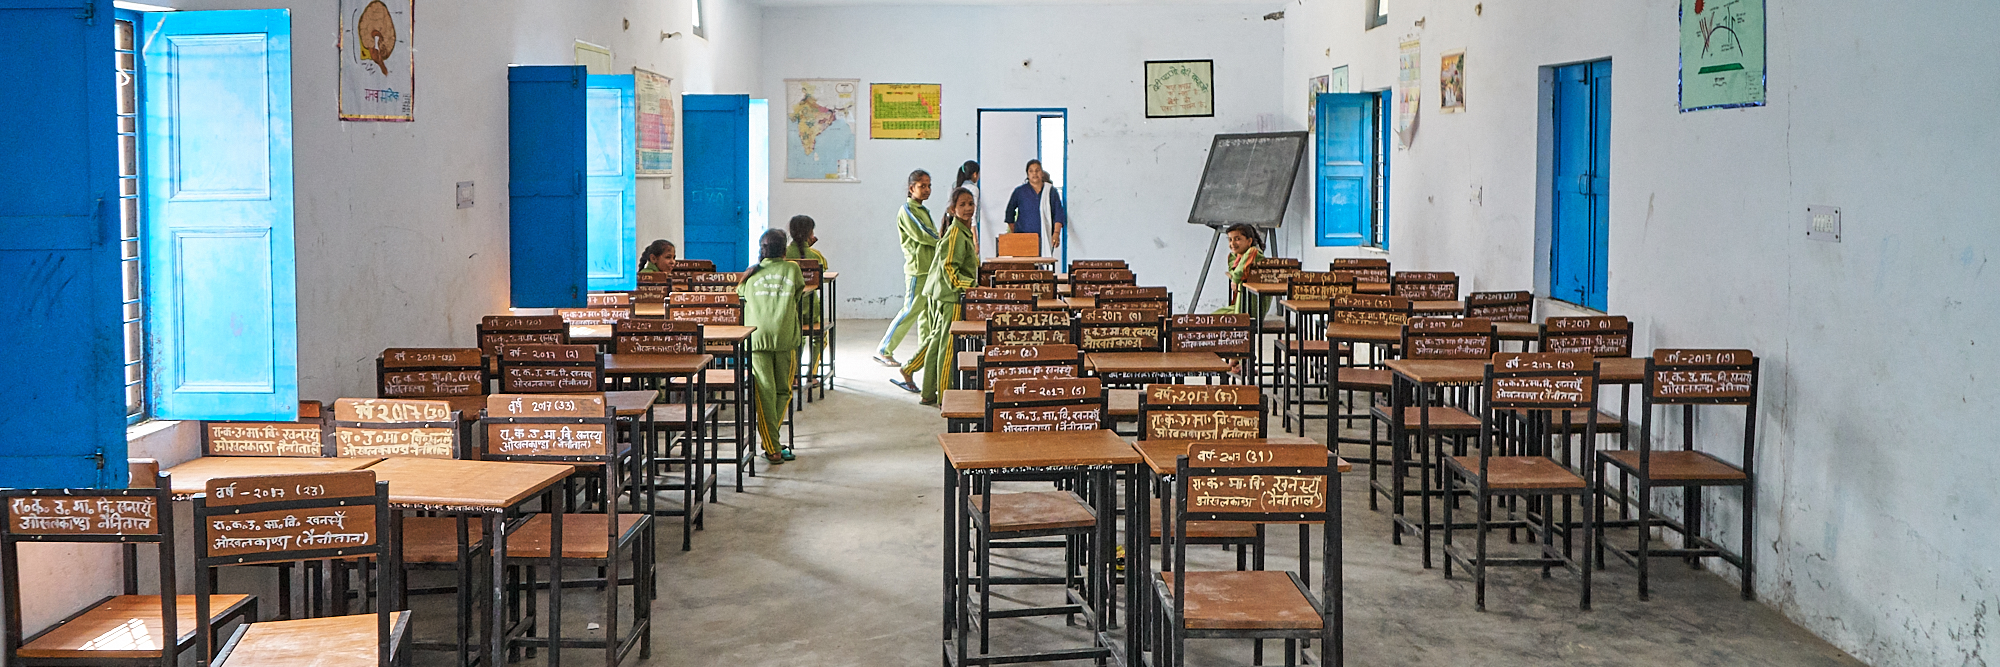 Funding Schools, Homes & Skills Centres  For destitute children, women and those with Special Needs in remote India